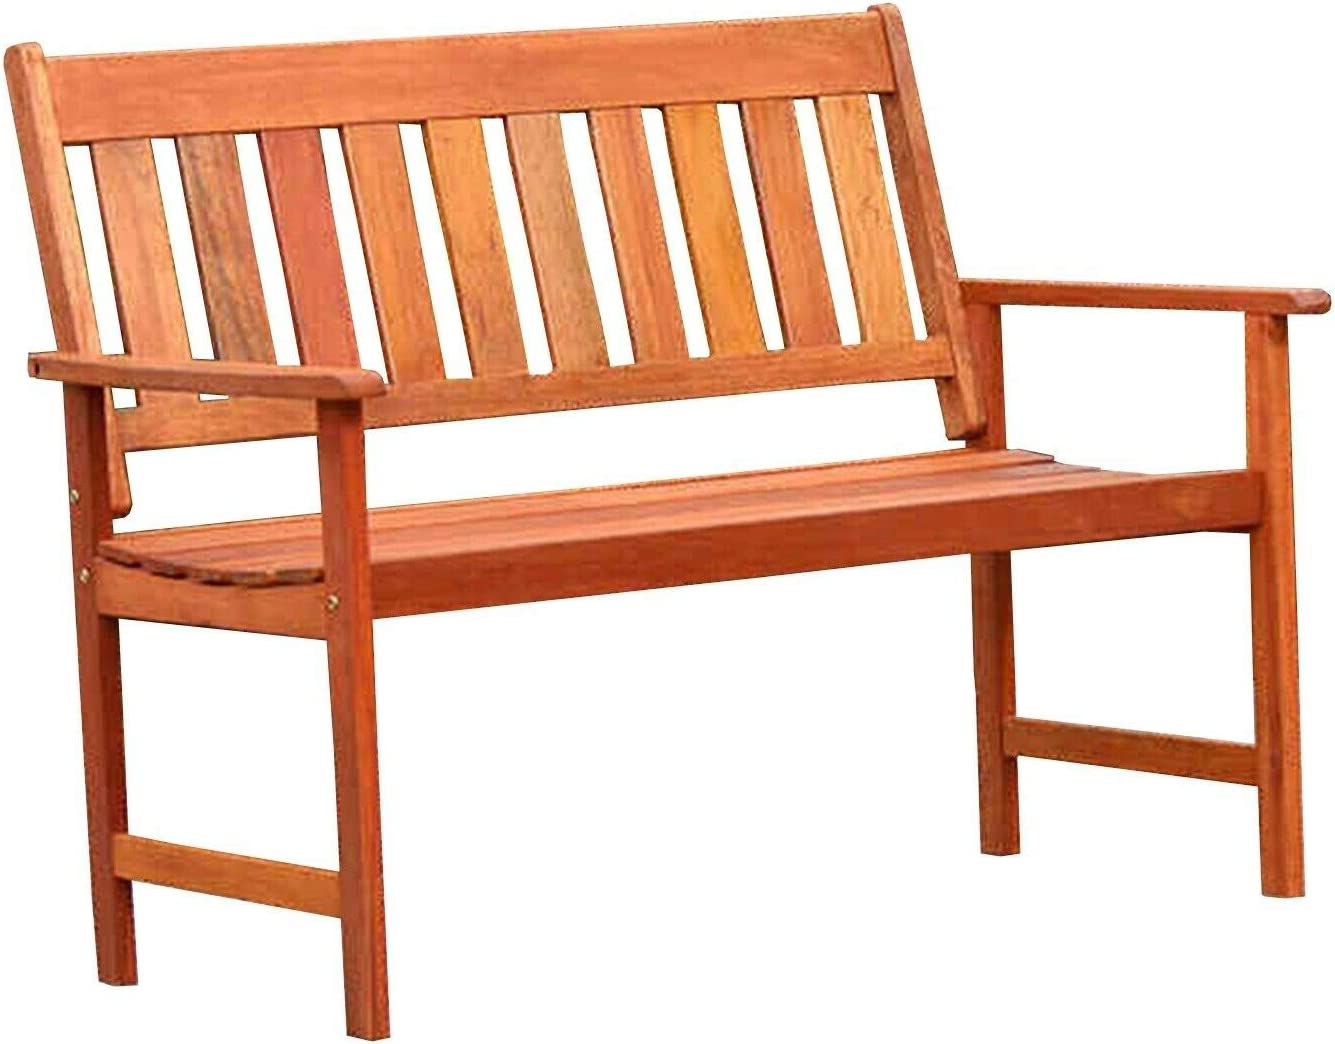 Garden Creation Jakarta Wooden Bench Solid wood Easy to assemble Perfect for relaxing